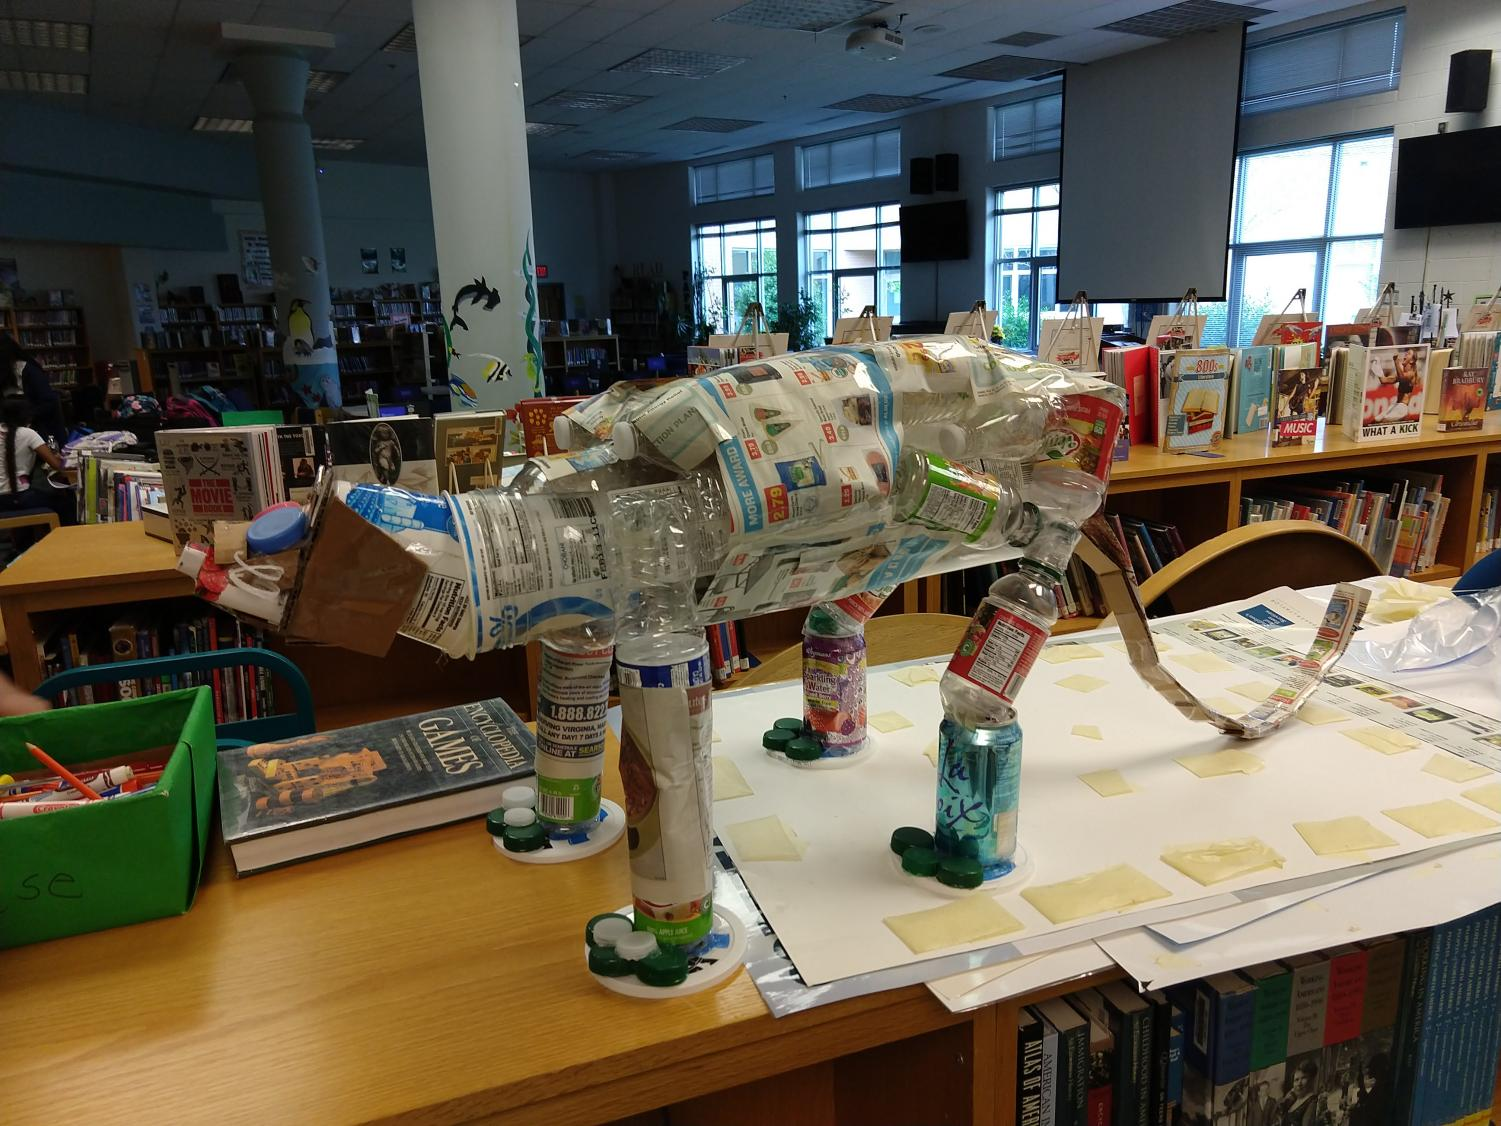 The Going Green club's panther mascot, created from a variety of recyclable materials.